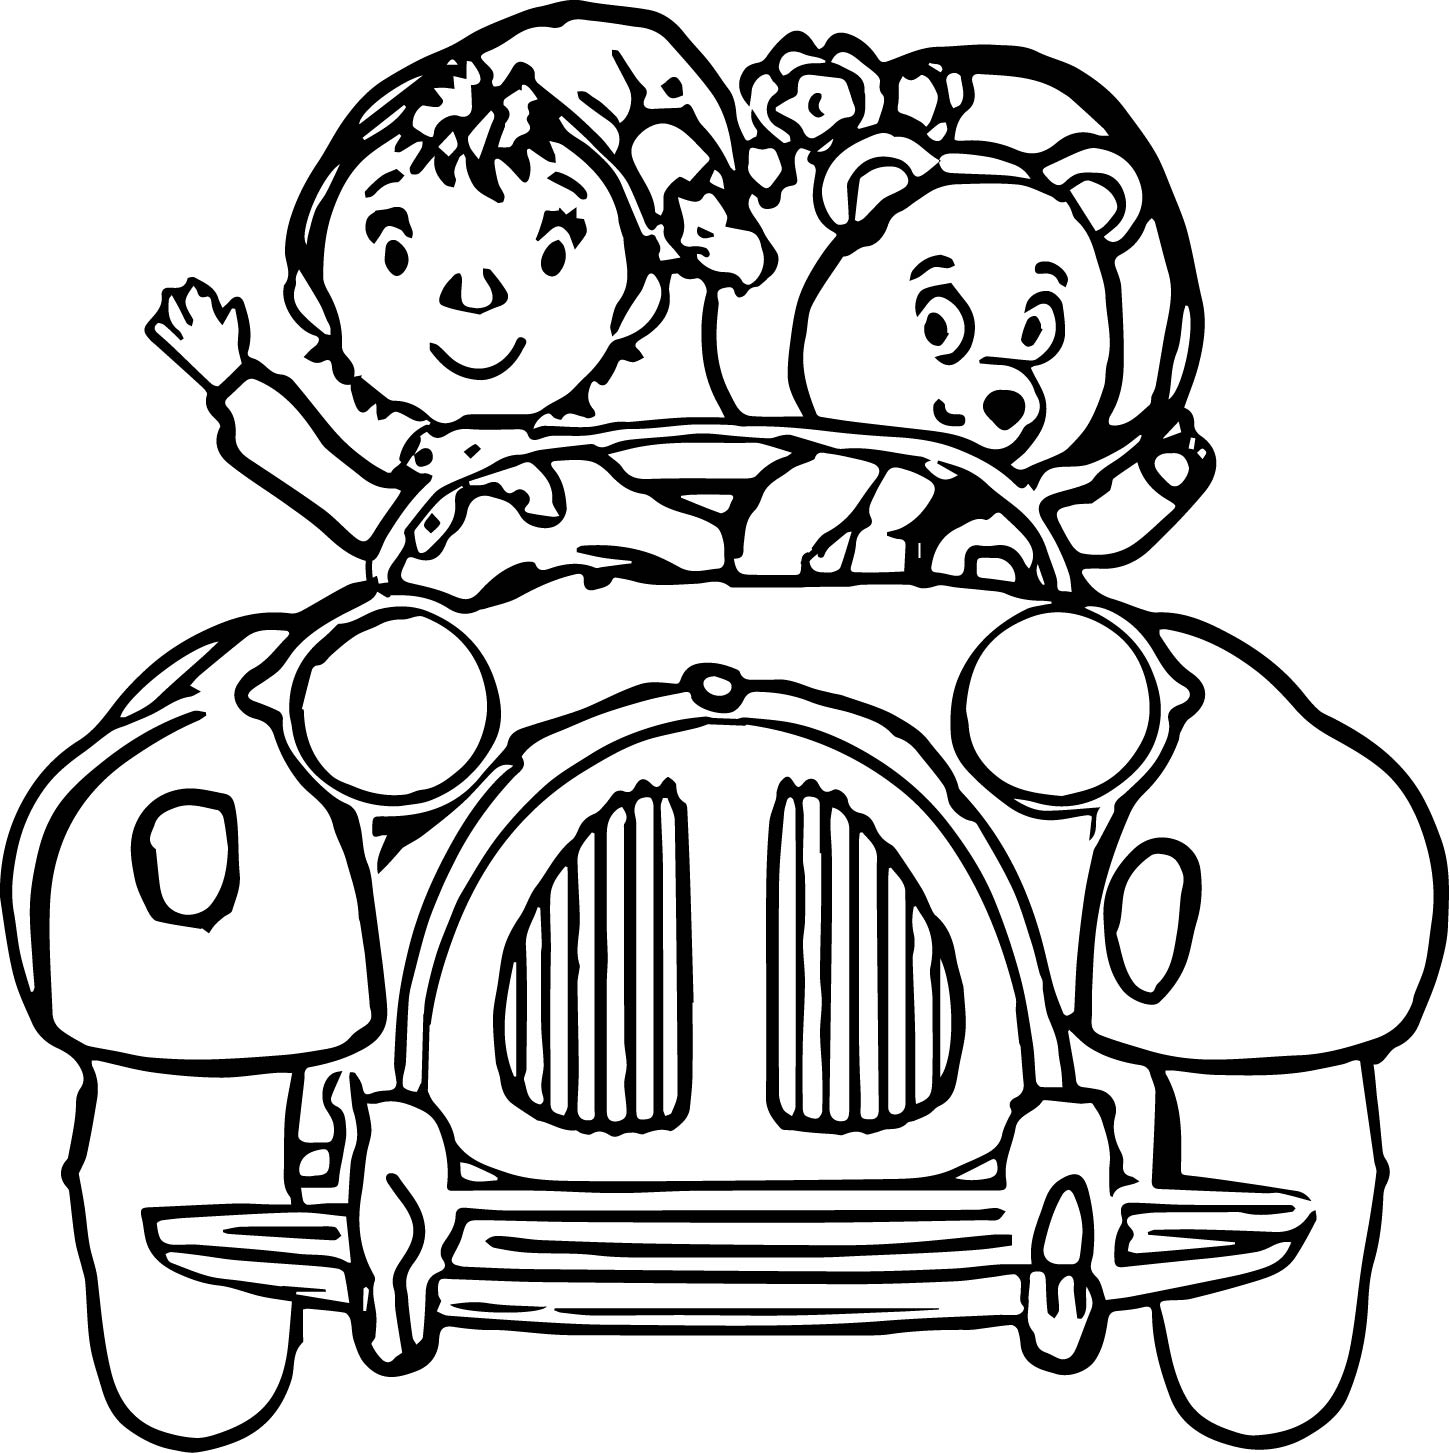 1449x1453 Noddy Cartoon Coloring Pages Wecoloringpage